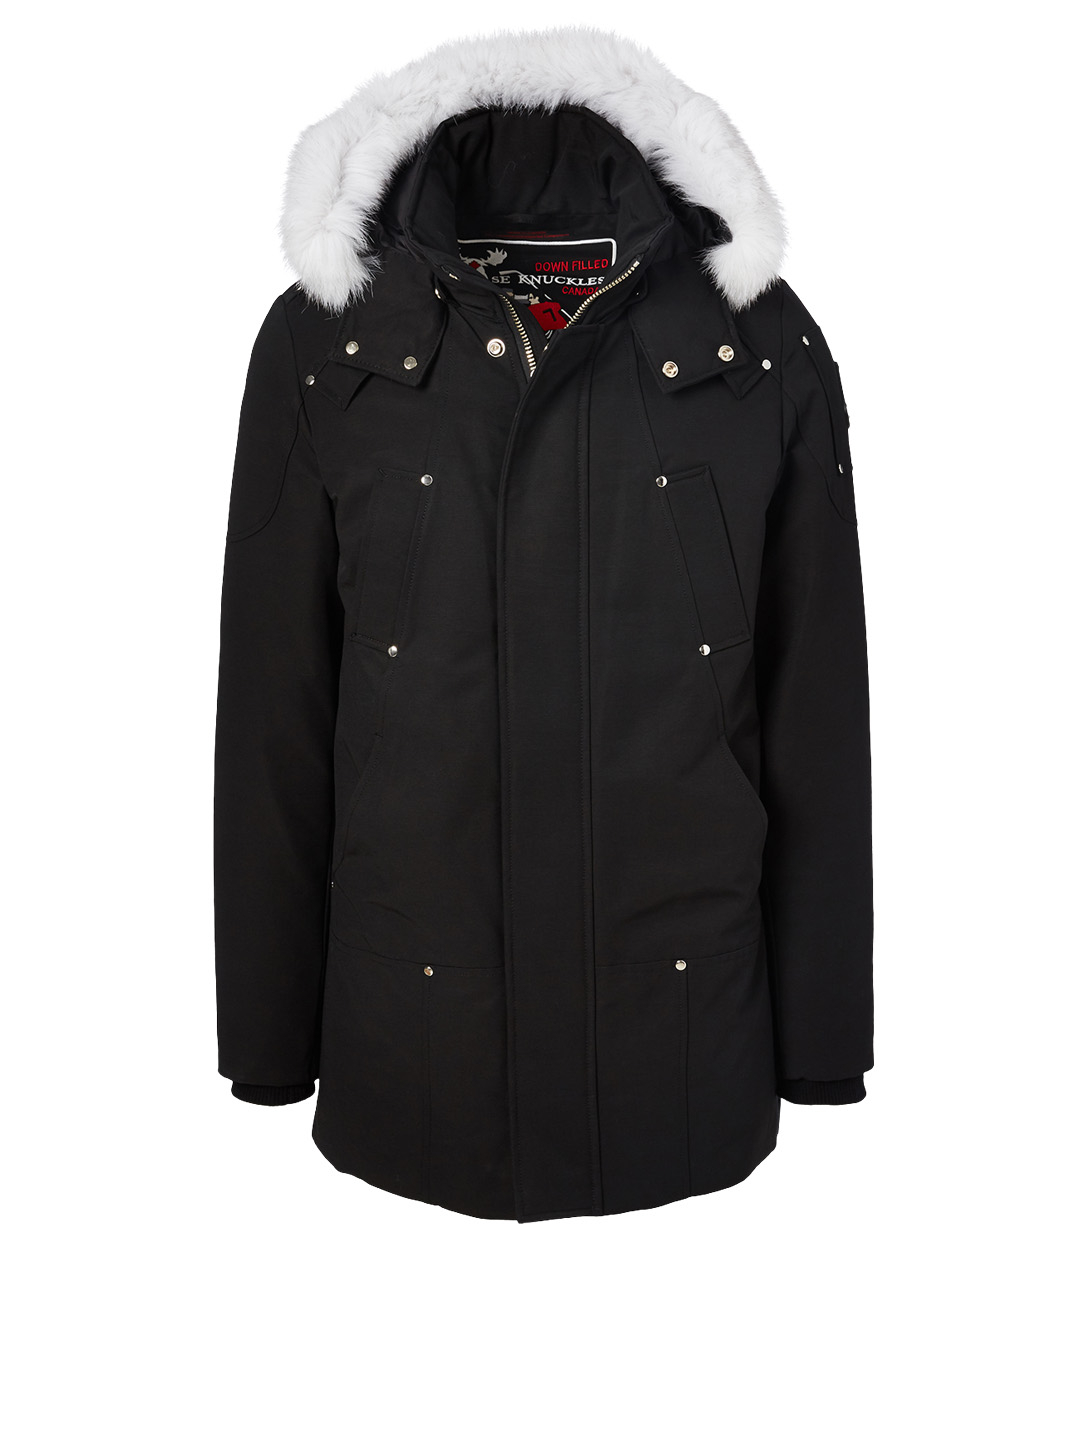 MOOSE KNUCKLES Stirling Parka With Fur Hood Men's Black